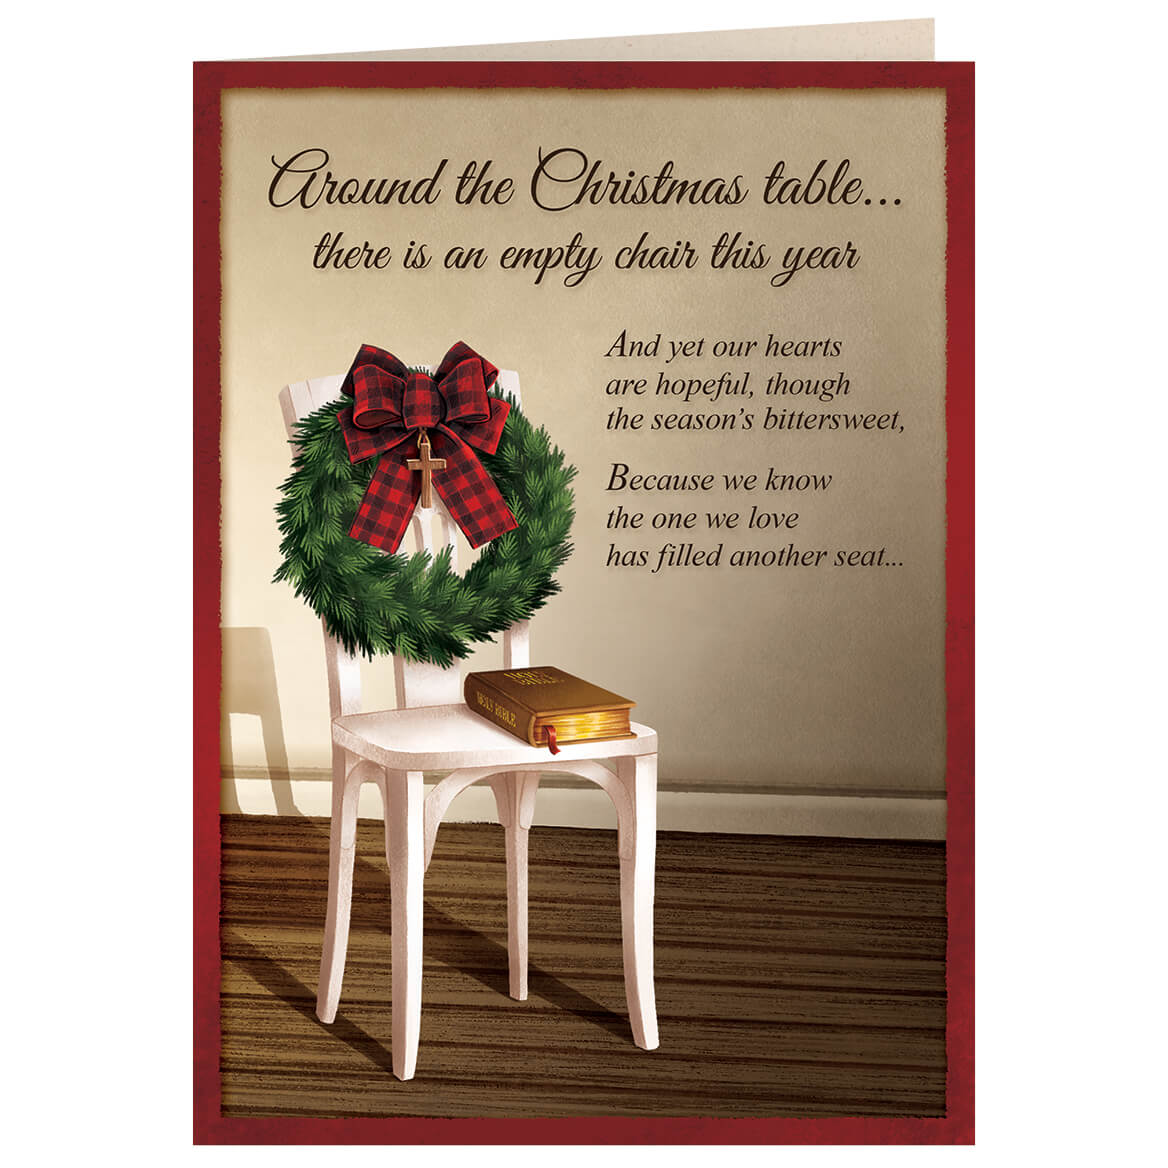 The Empty Chair Christmas Card Set of 20-371906